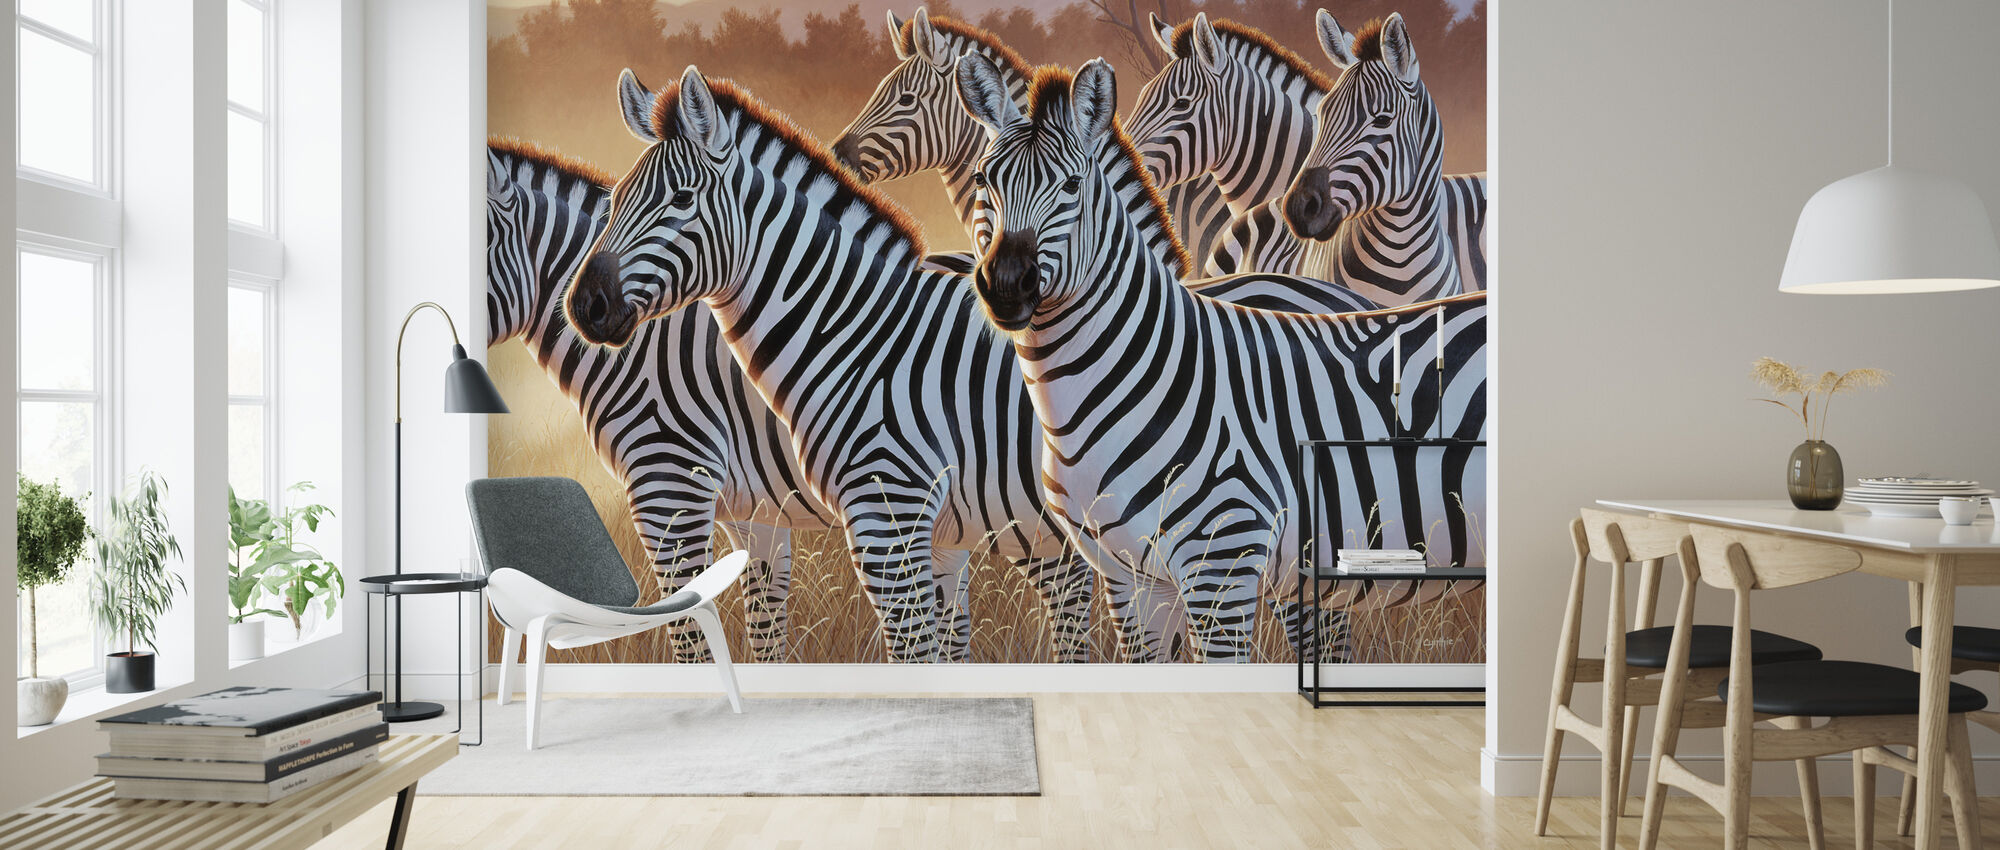 Zebras in a Group - Wallpaper - Living Room